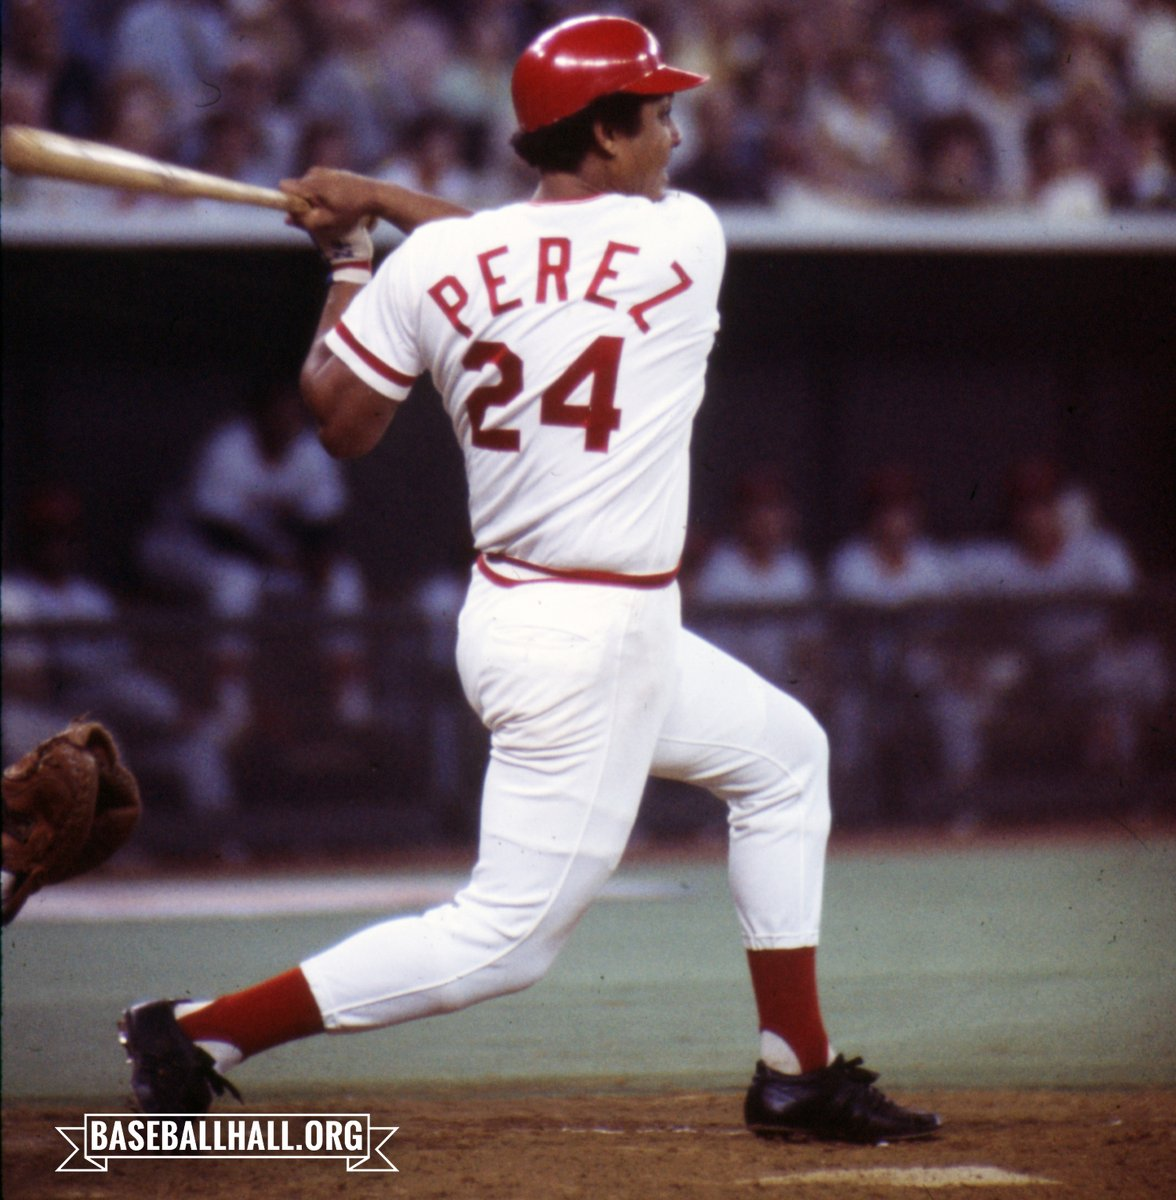 20 years ago today, the @Reds retired #24 in honor of Hall of Famer Tony Pérez. Another famous #24, Ken Griffey Jr., agreed to switch his number to 30, in homage to his father and former Big Red Machine standout Ken Griffey Sr. Photo: Dick Raphael pic.twitter.com/3ghYe0XyFL